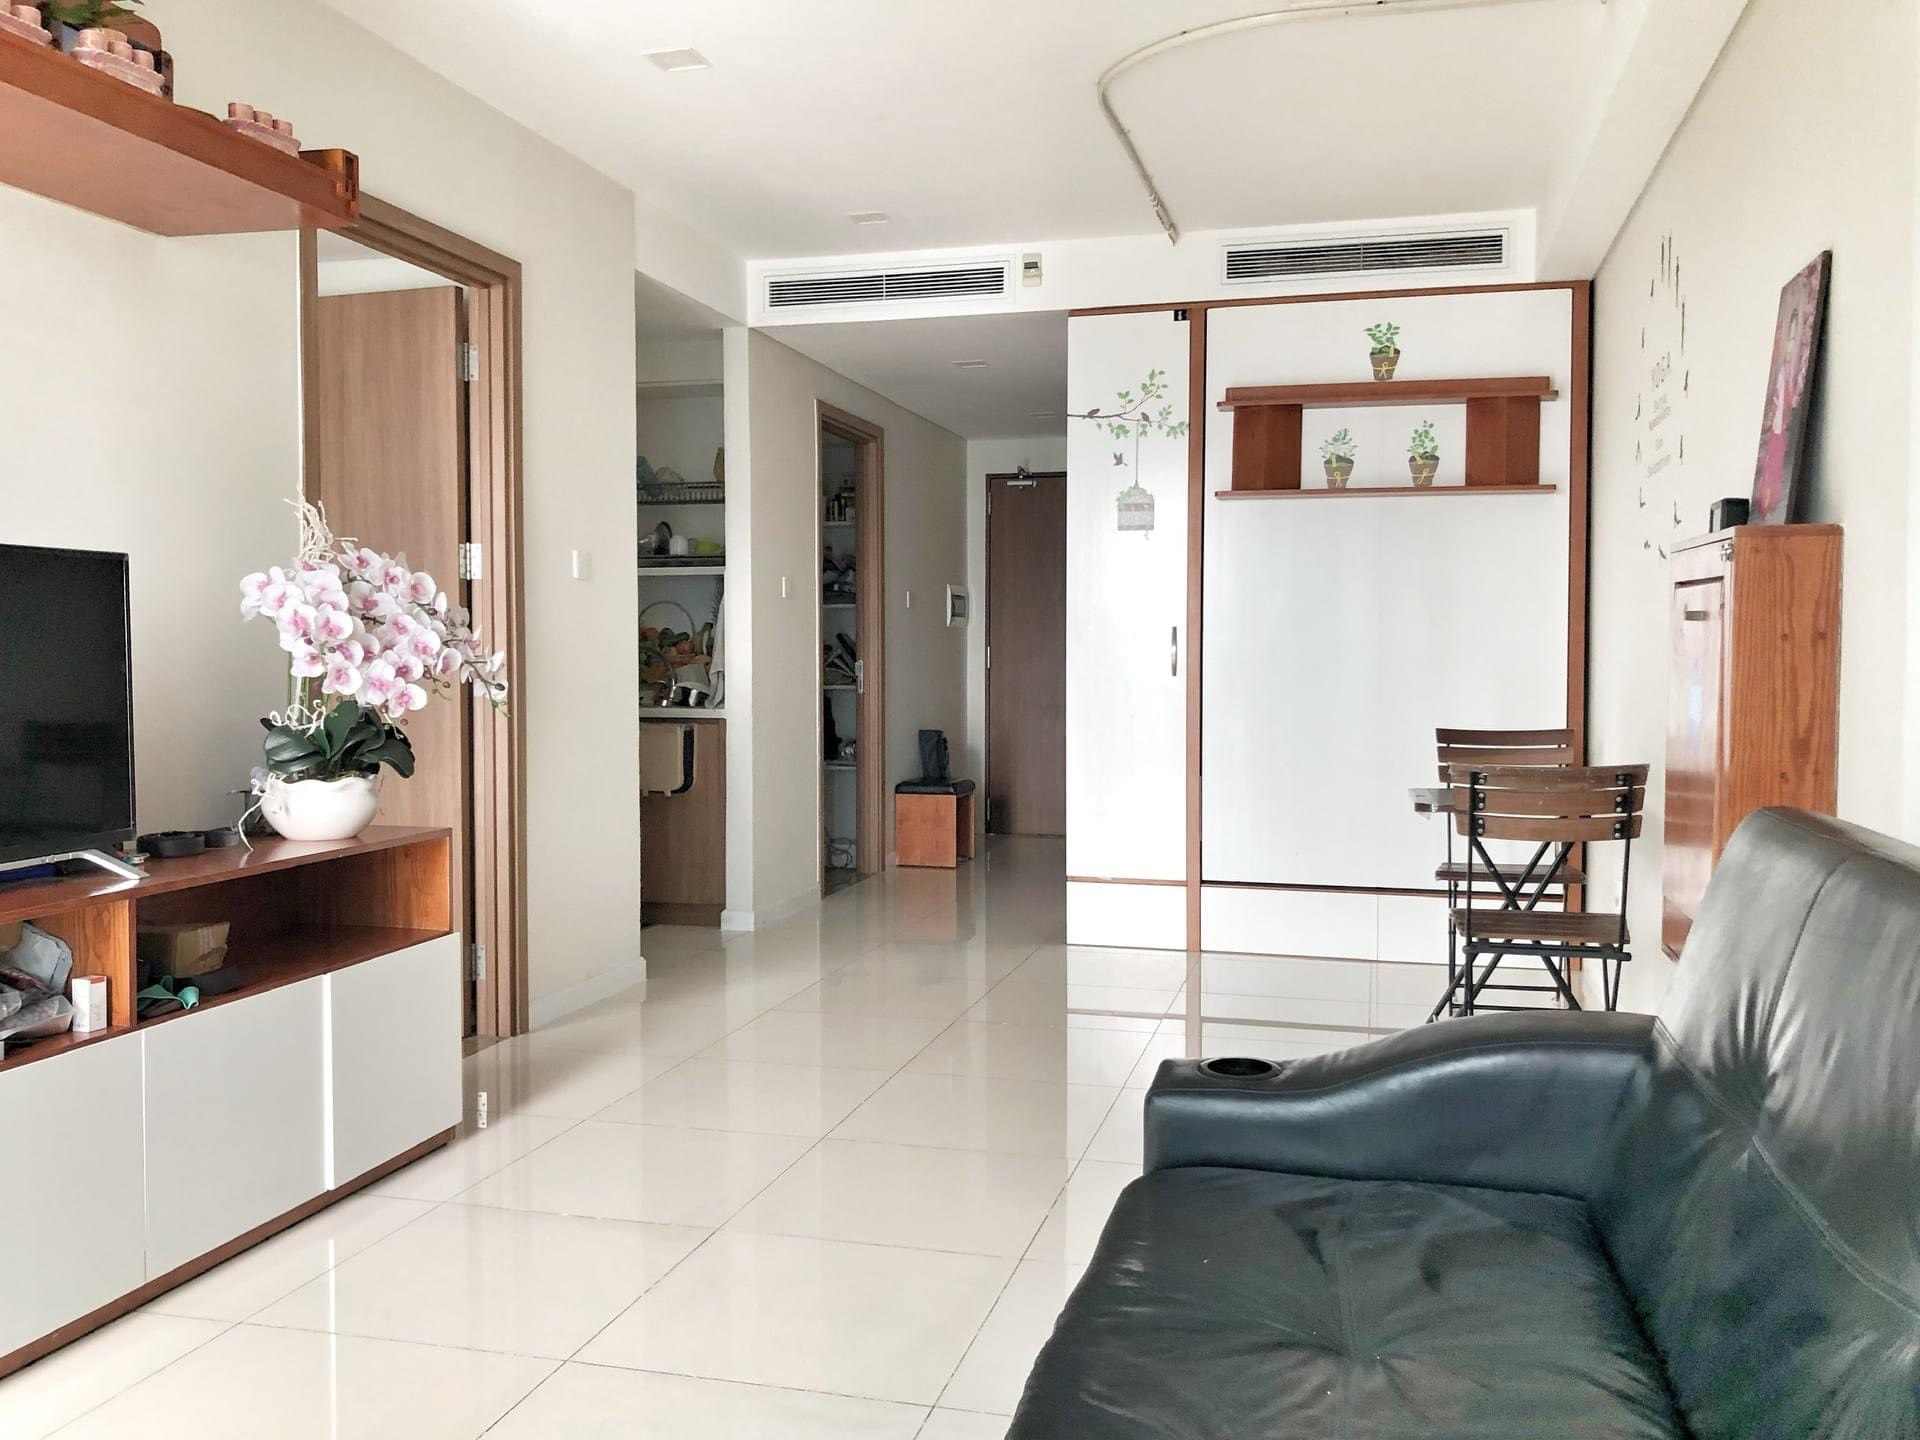 sale Rivera Park Sai Gon - 2 bedroom - 2 wc